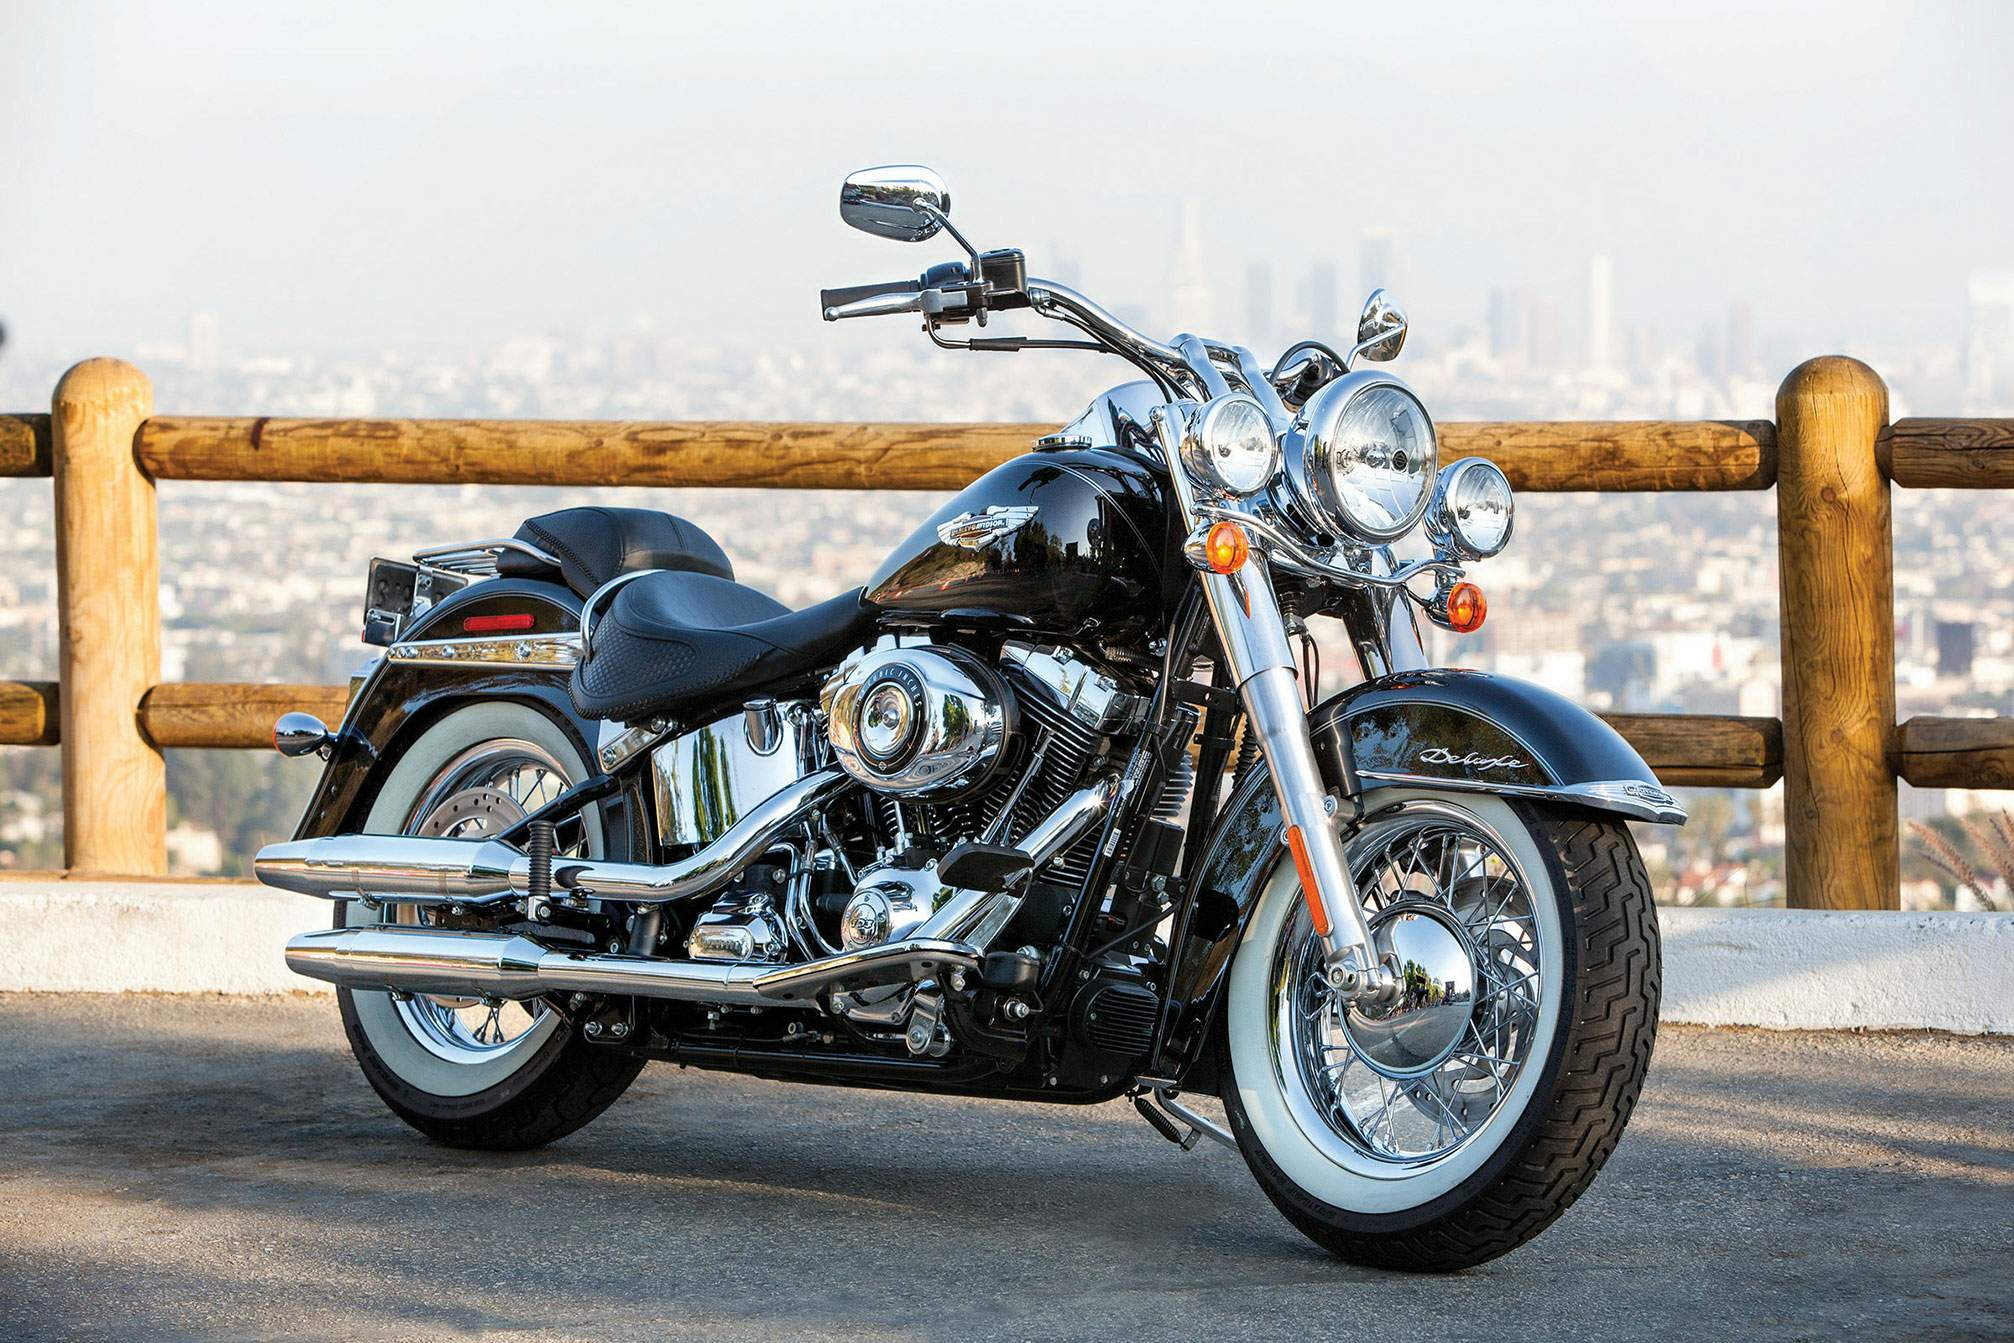 harly davidson Woodstock h-d® is your premier harley-davidson® dealership in woodstock, il for harley® bikes, parts, accessories, & service.